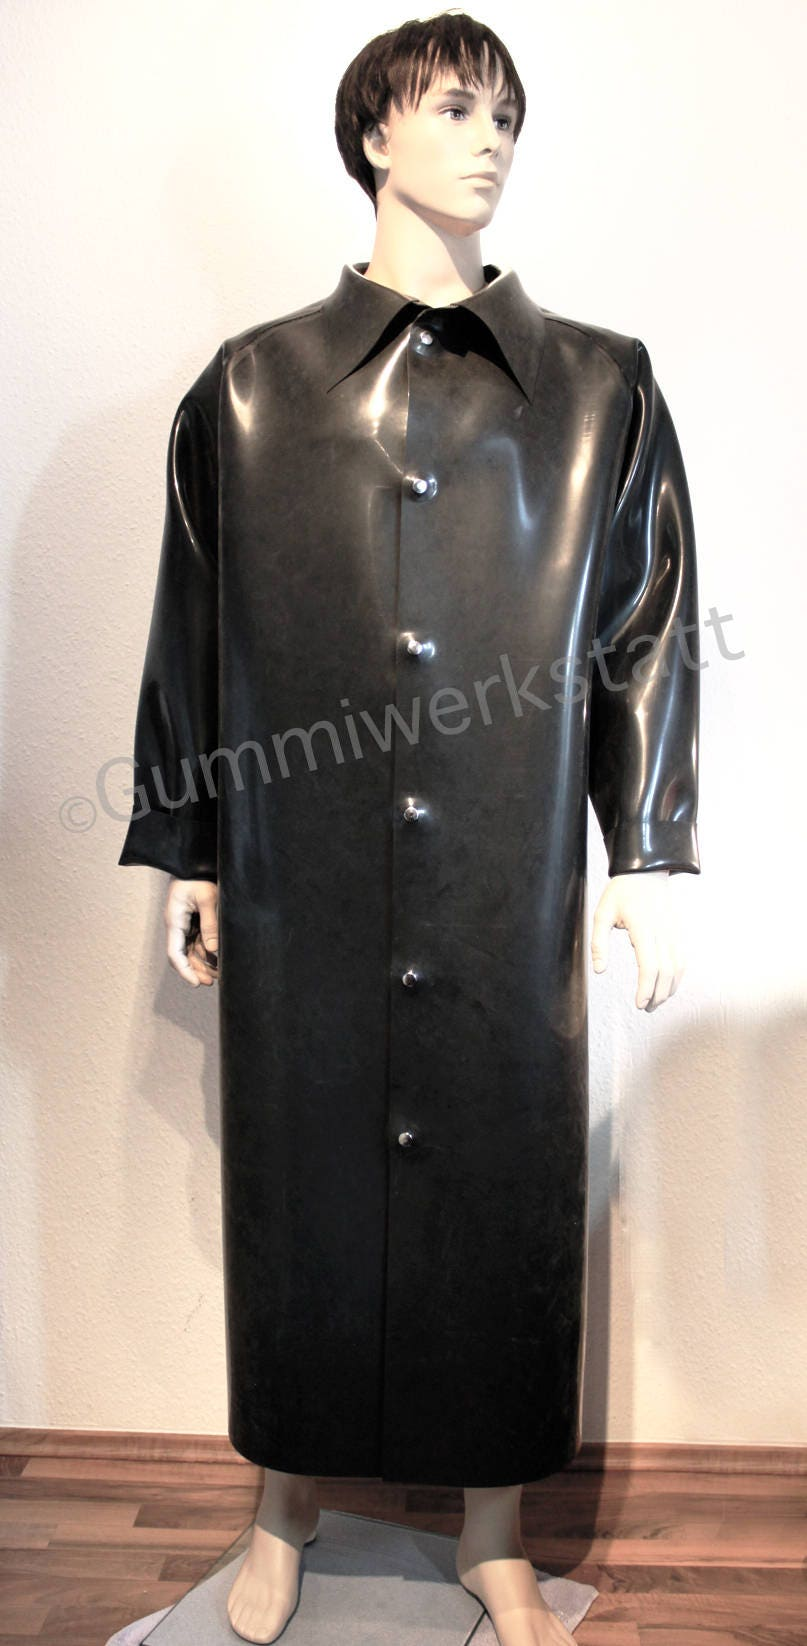 rubber coat raincoat macintosh with collar